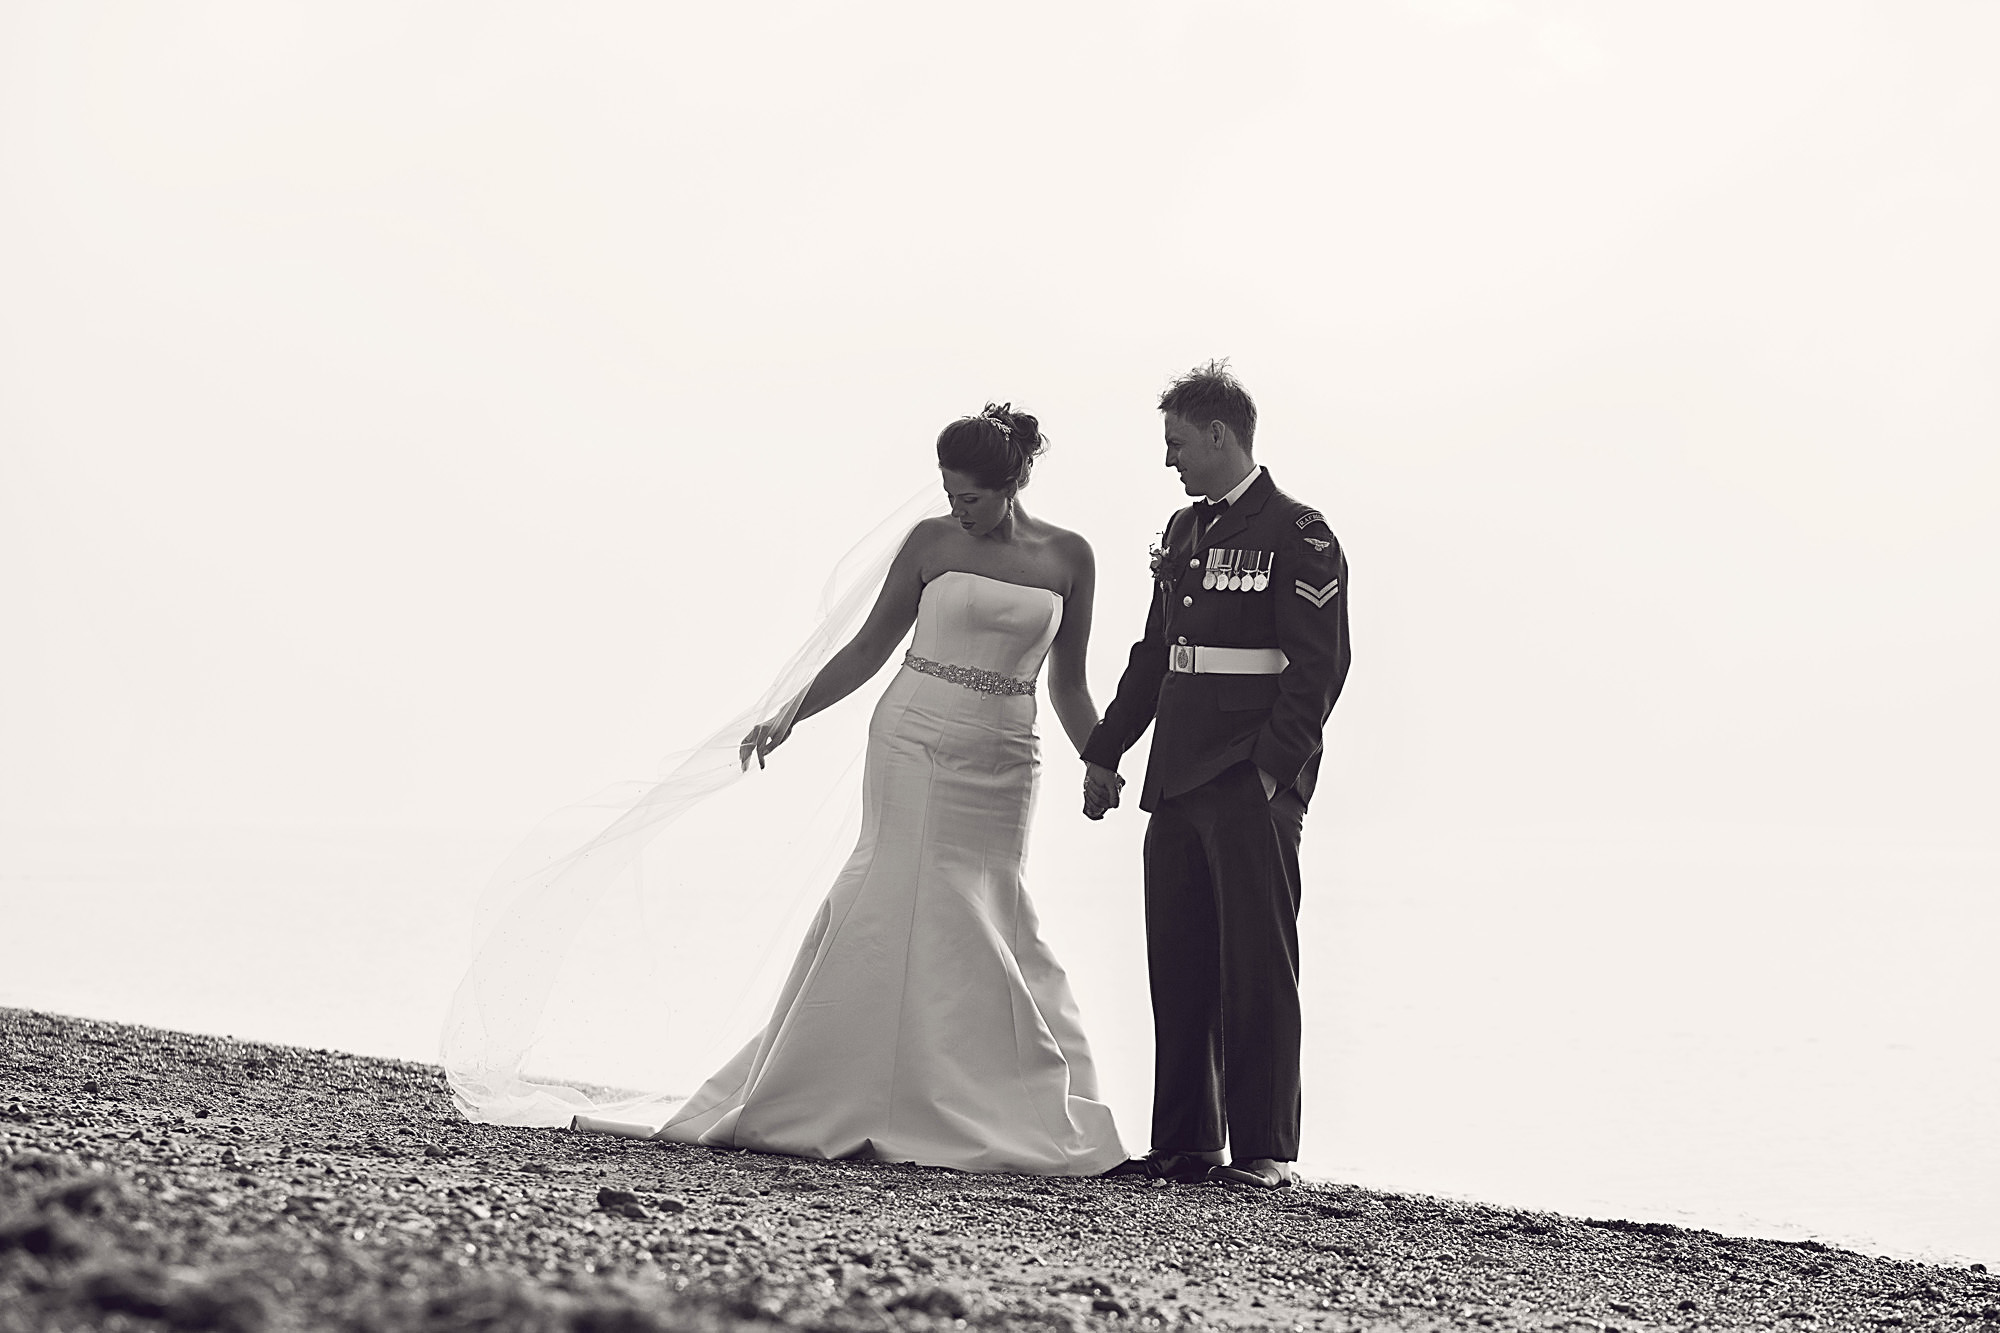 heacham-manor-wedding-photos (29).jpg